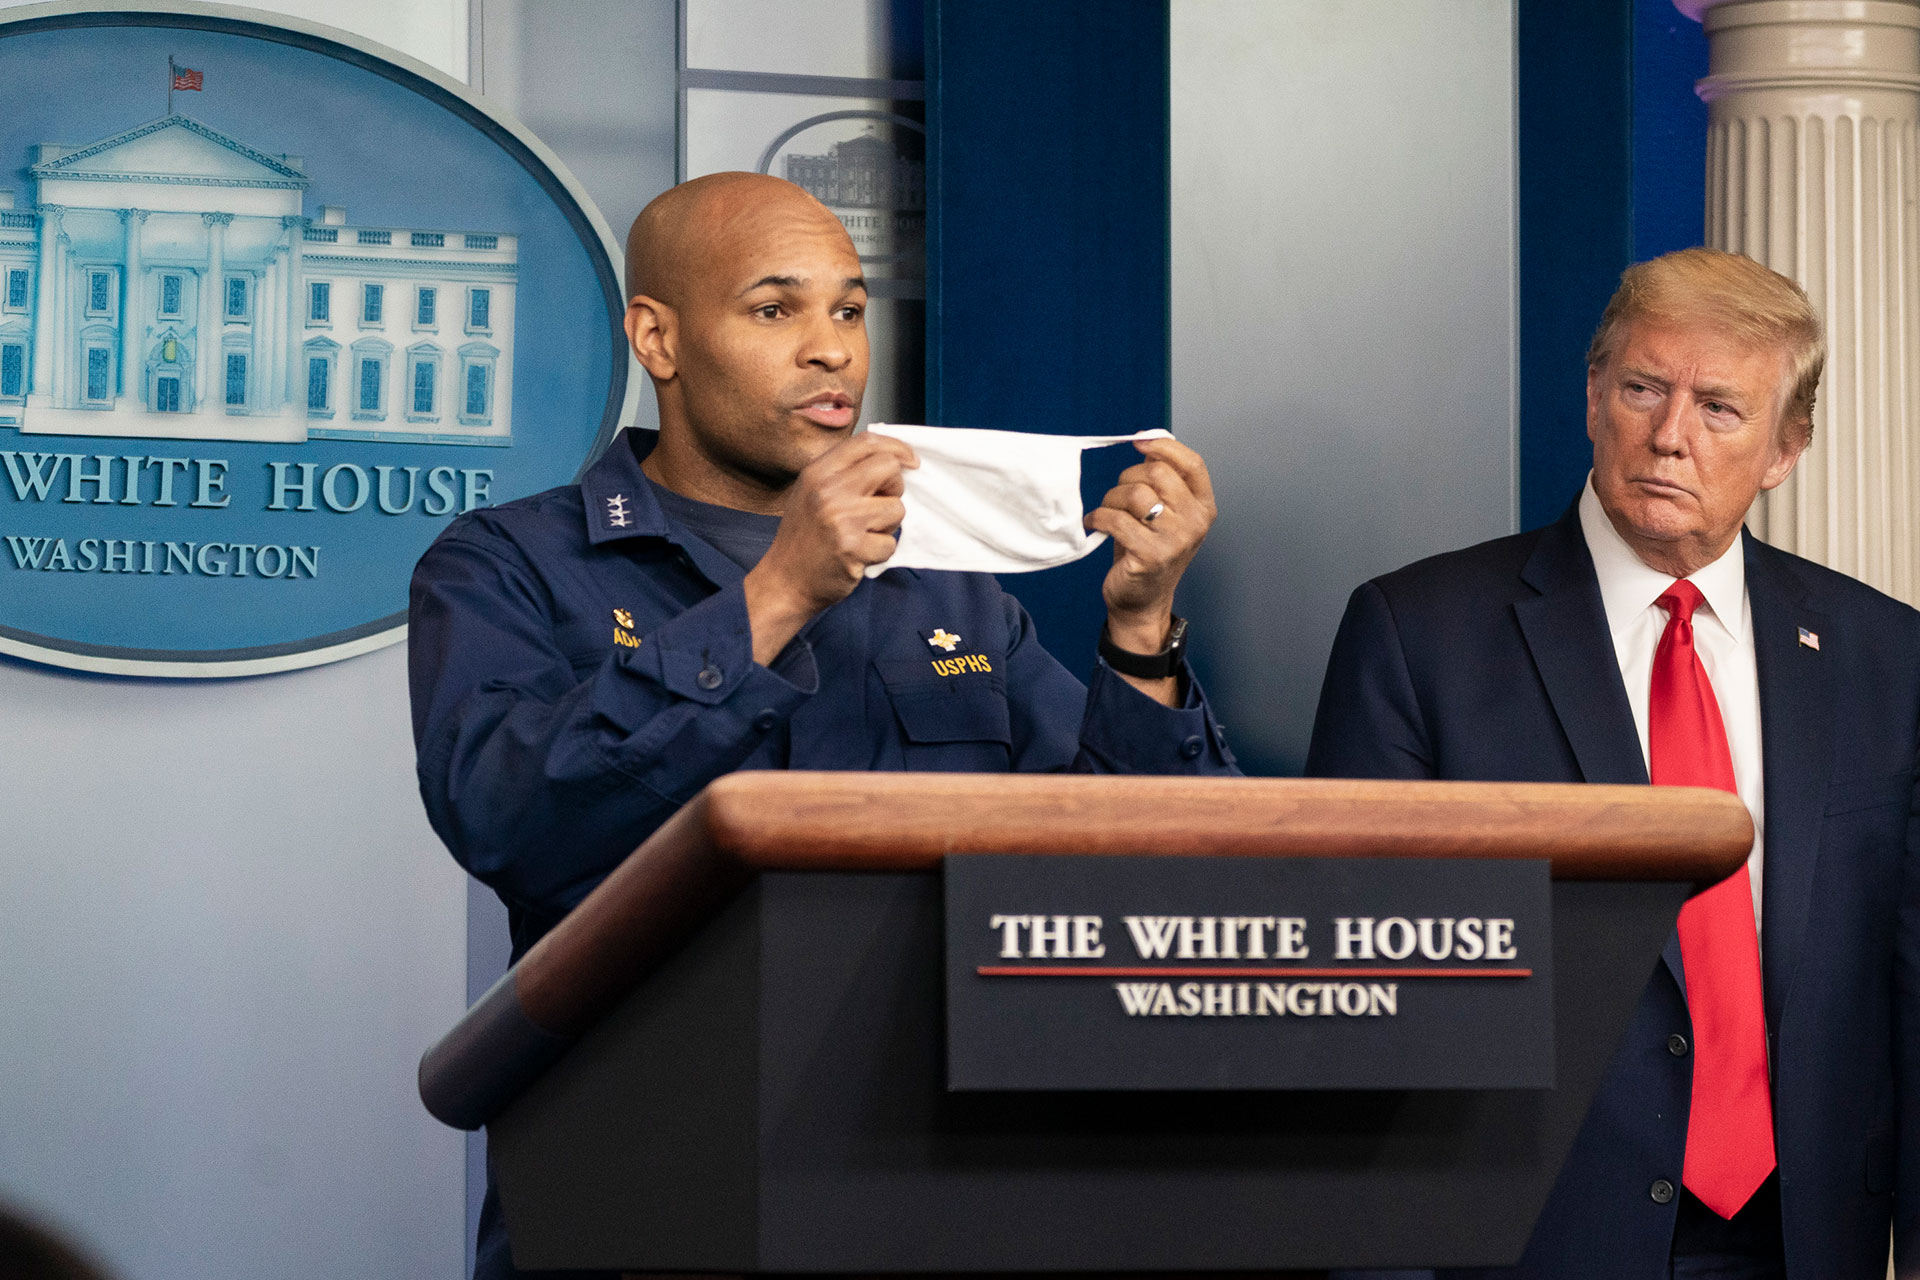 President Donald J. Trump listens as U.S. Surgeon General Jerome Adams delivers remarks and urges citizens to wear masks in public at the coronavirus (COVID-19) update briefing Wednesday, April 22, 2020. (Official White House Photo by Shealah Craighead, Flickr/Public Domain)